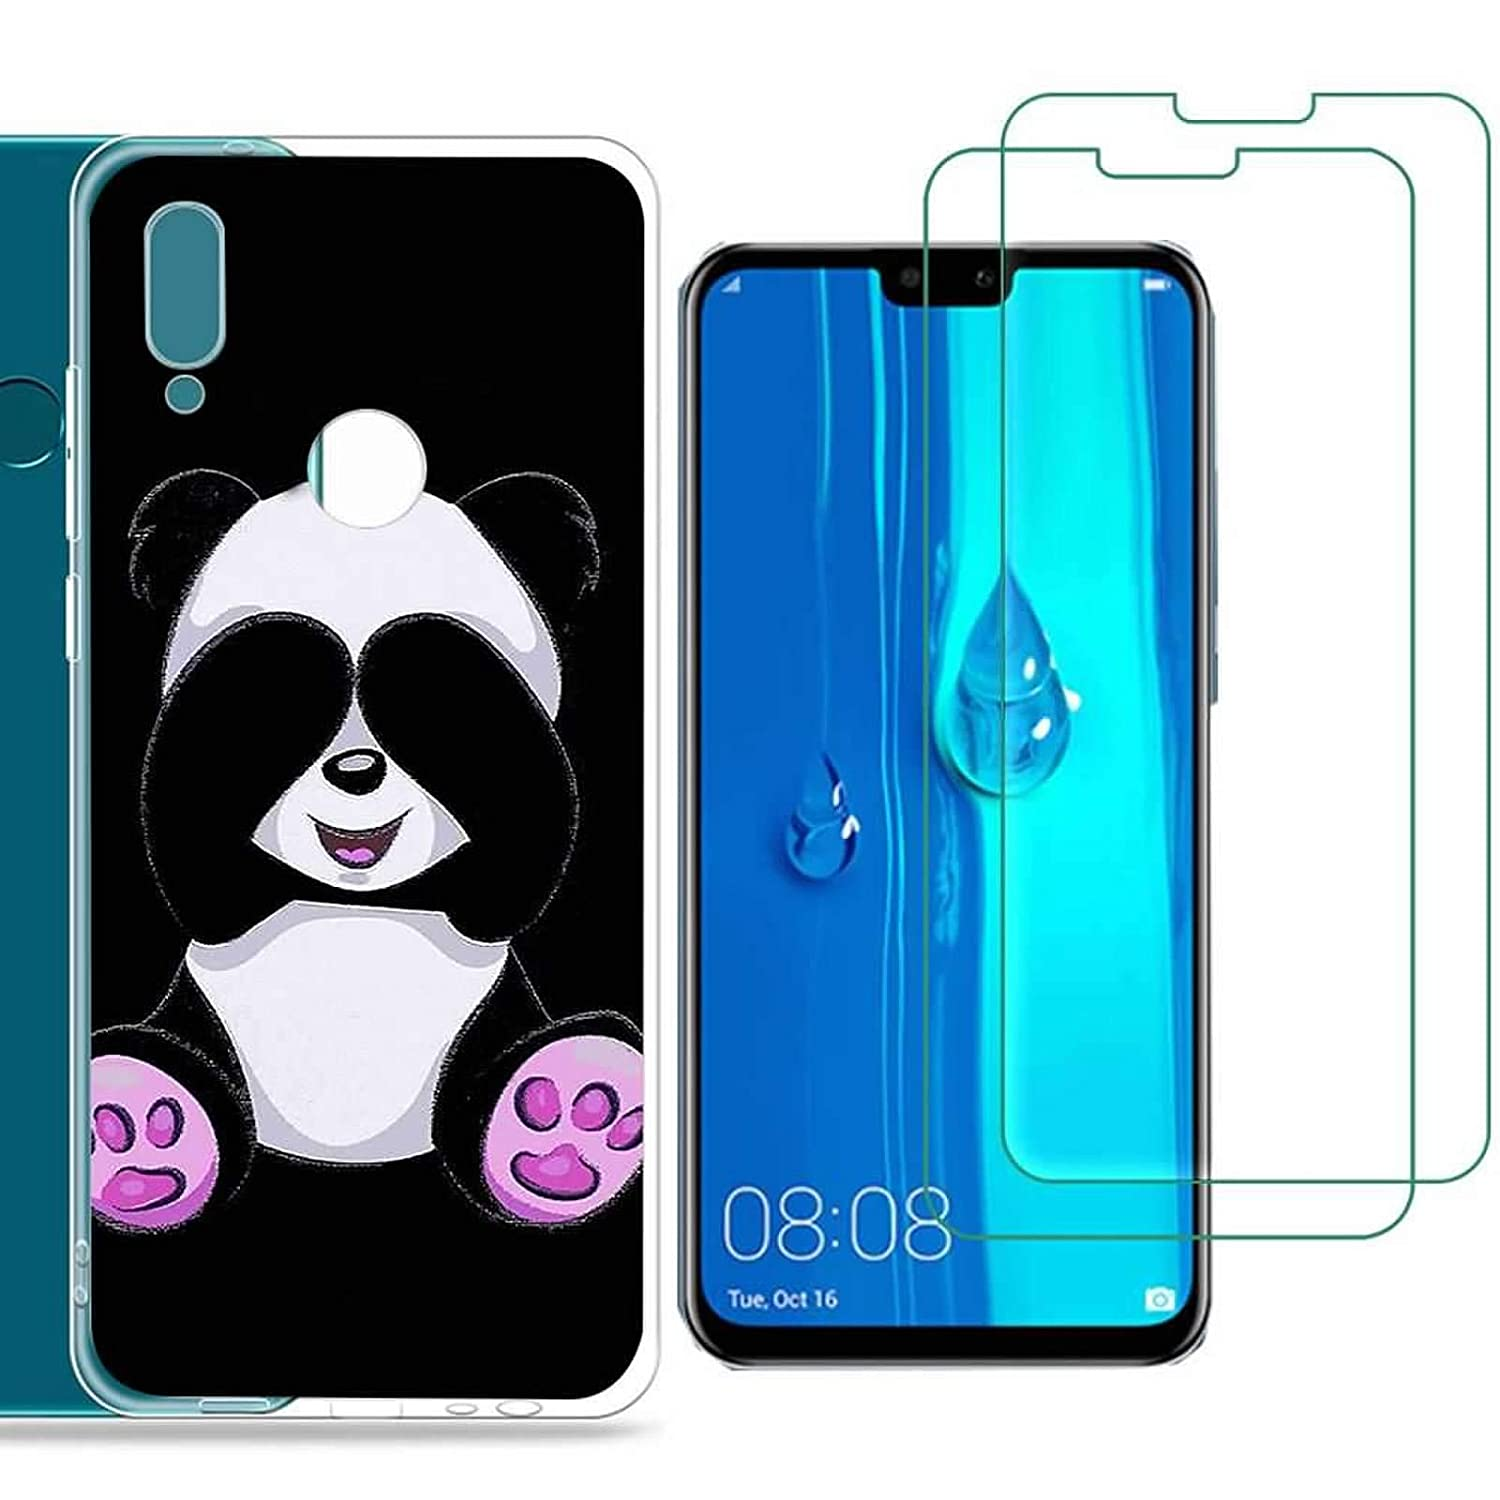 Huawei Y9 2019 Case with 2 Pack Glass Screen Protector Phone Case for Men Women Girls Clear Soft TPU with Protective Bumper Cover Case for Huawei Y9 2019-panda